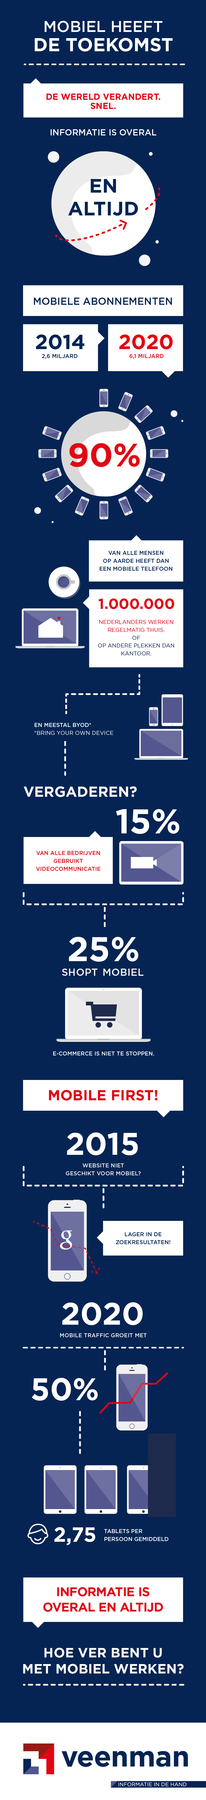 Infographic Mobility Veenman